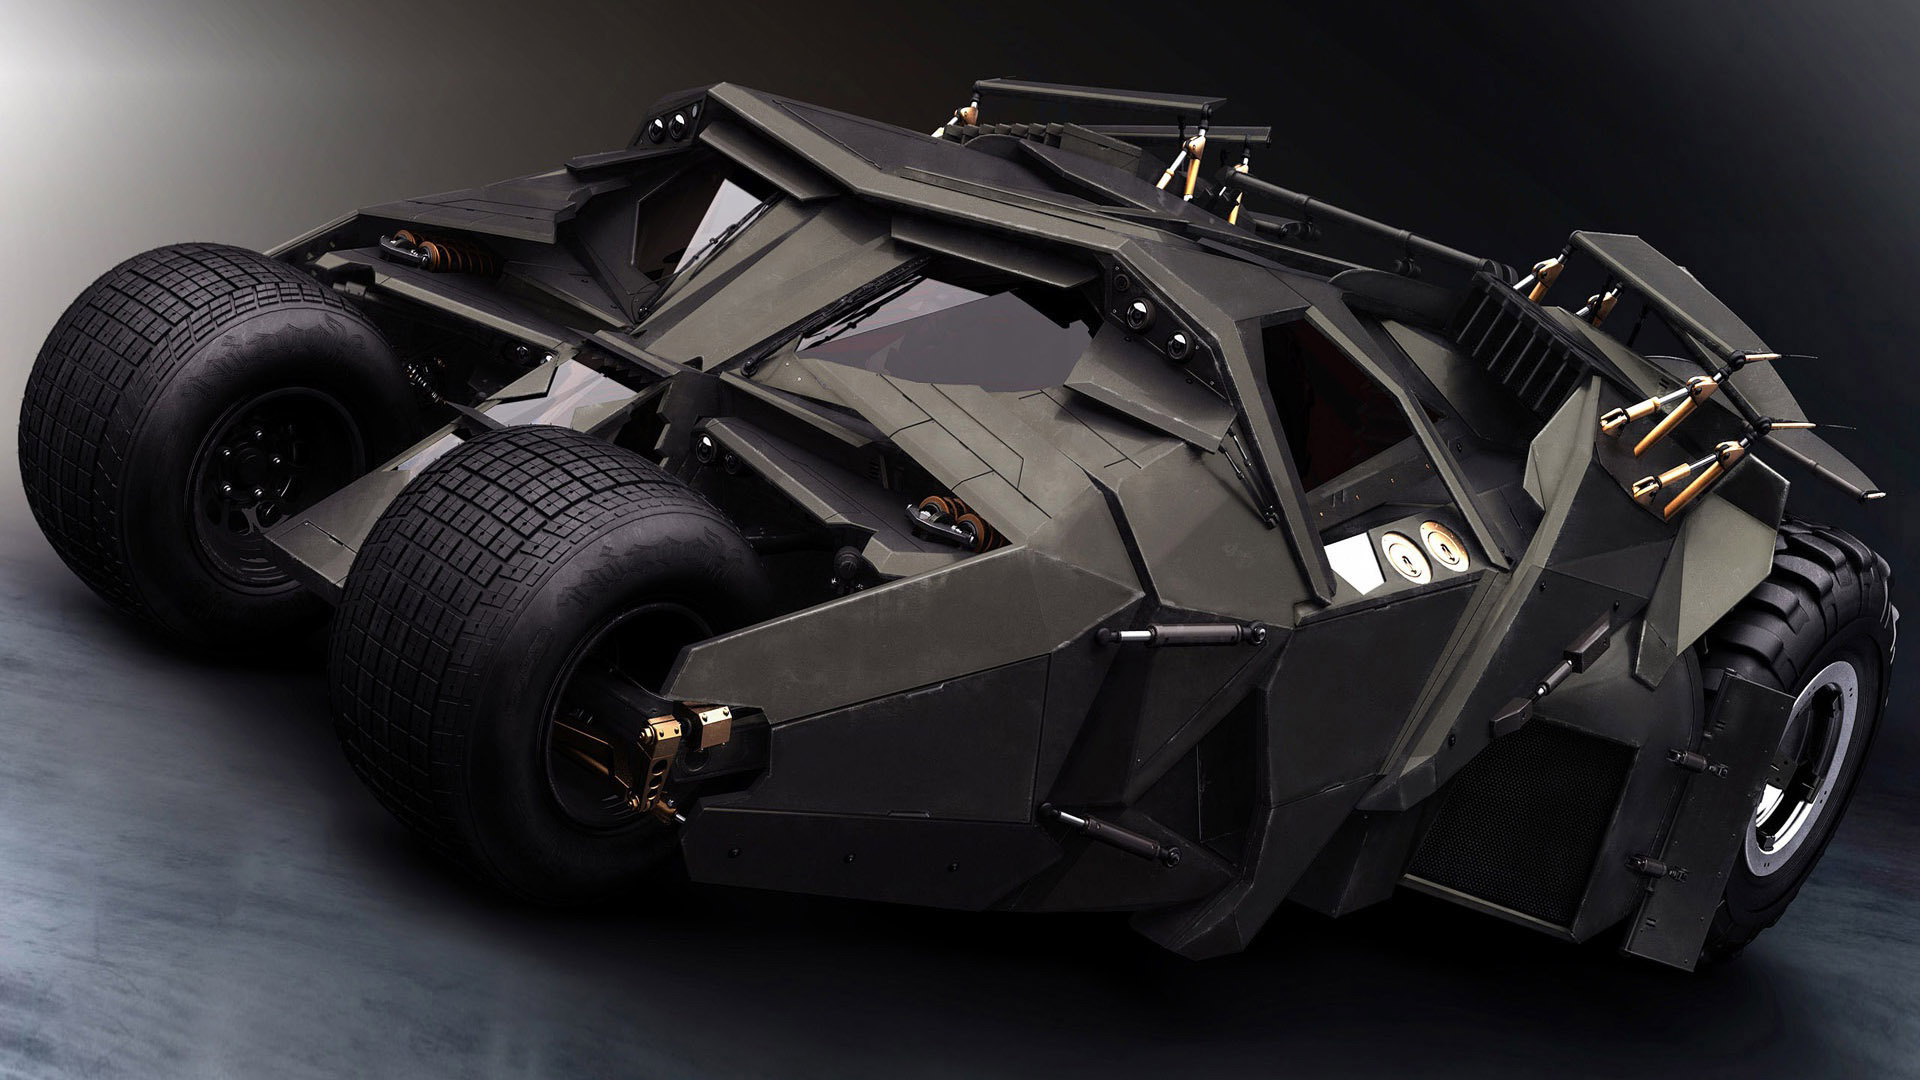 Christopher Nolan's design team took a different tack, by making the Batmobile a straight-up military vehicle. It was created by designer Neil Crowley, ...